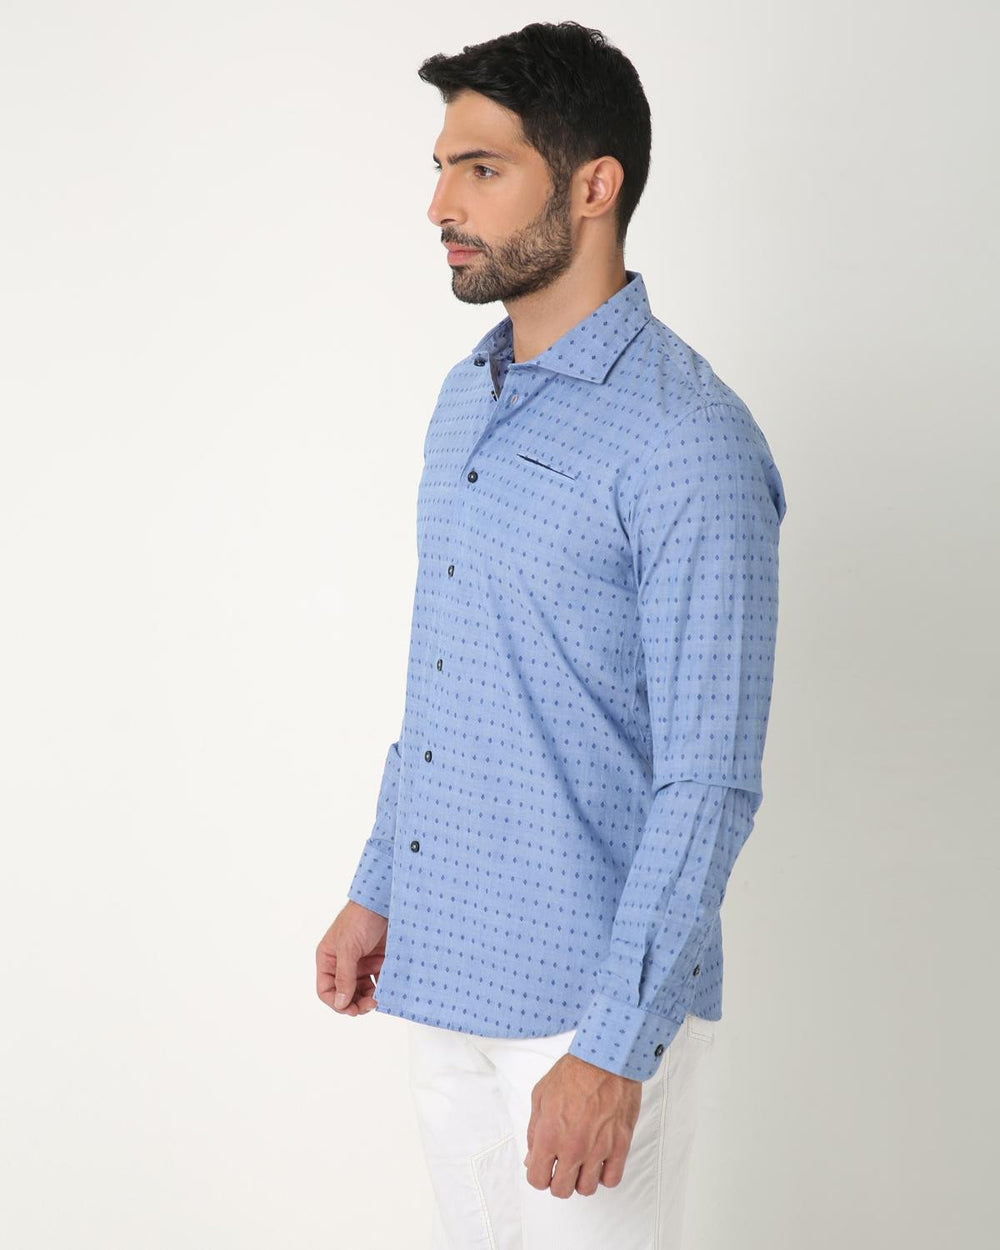 Blue Dotted Shirt, MASIMO